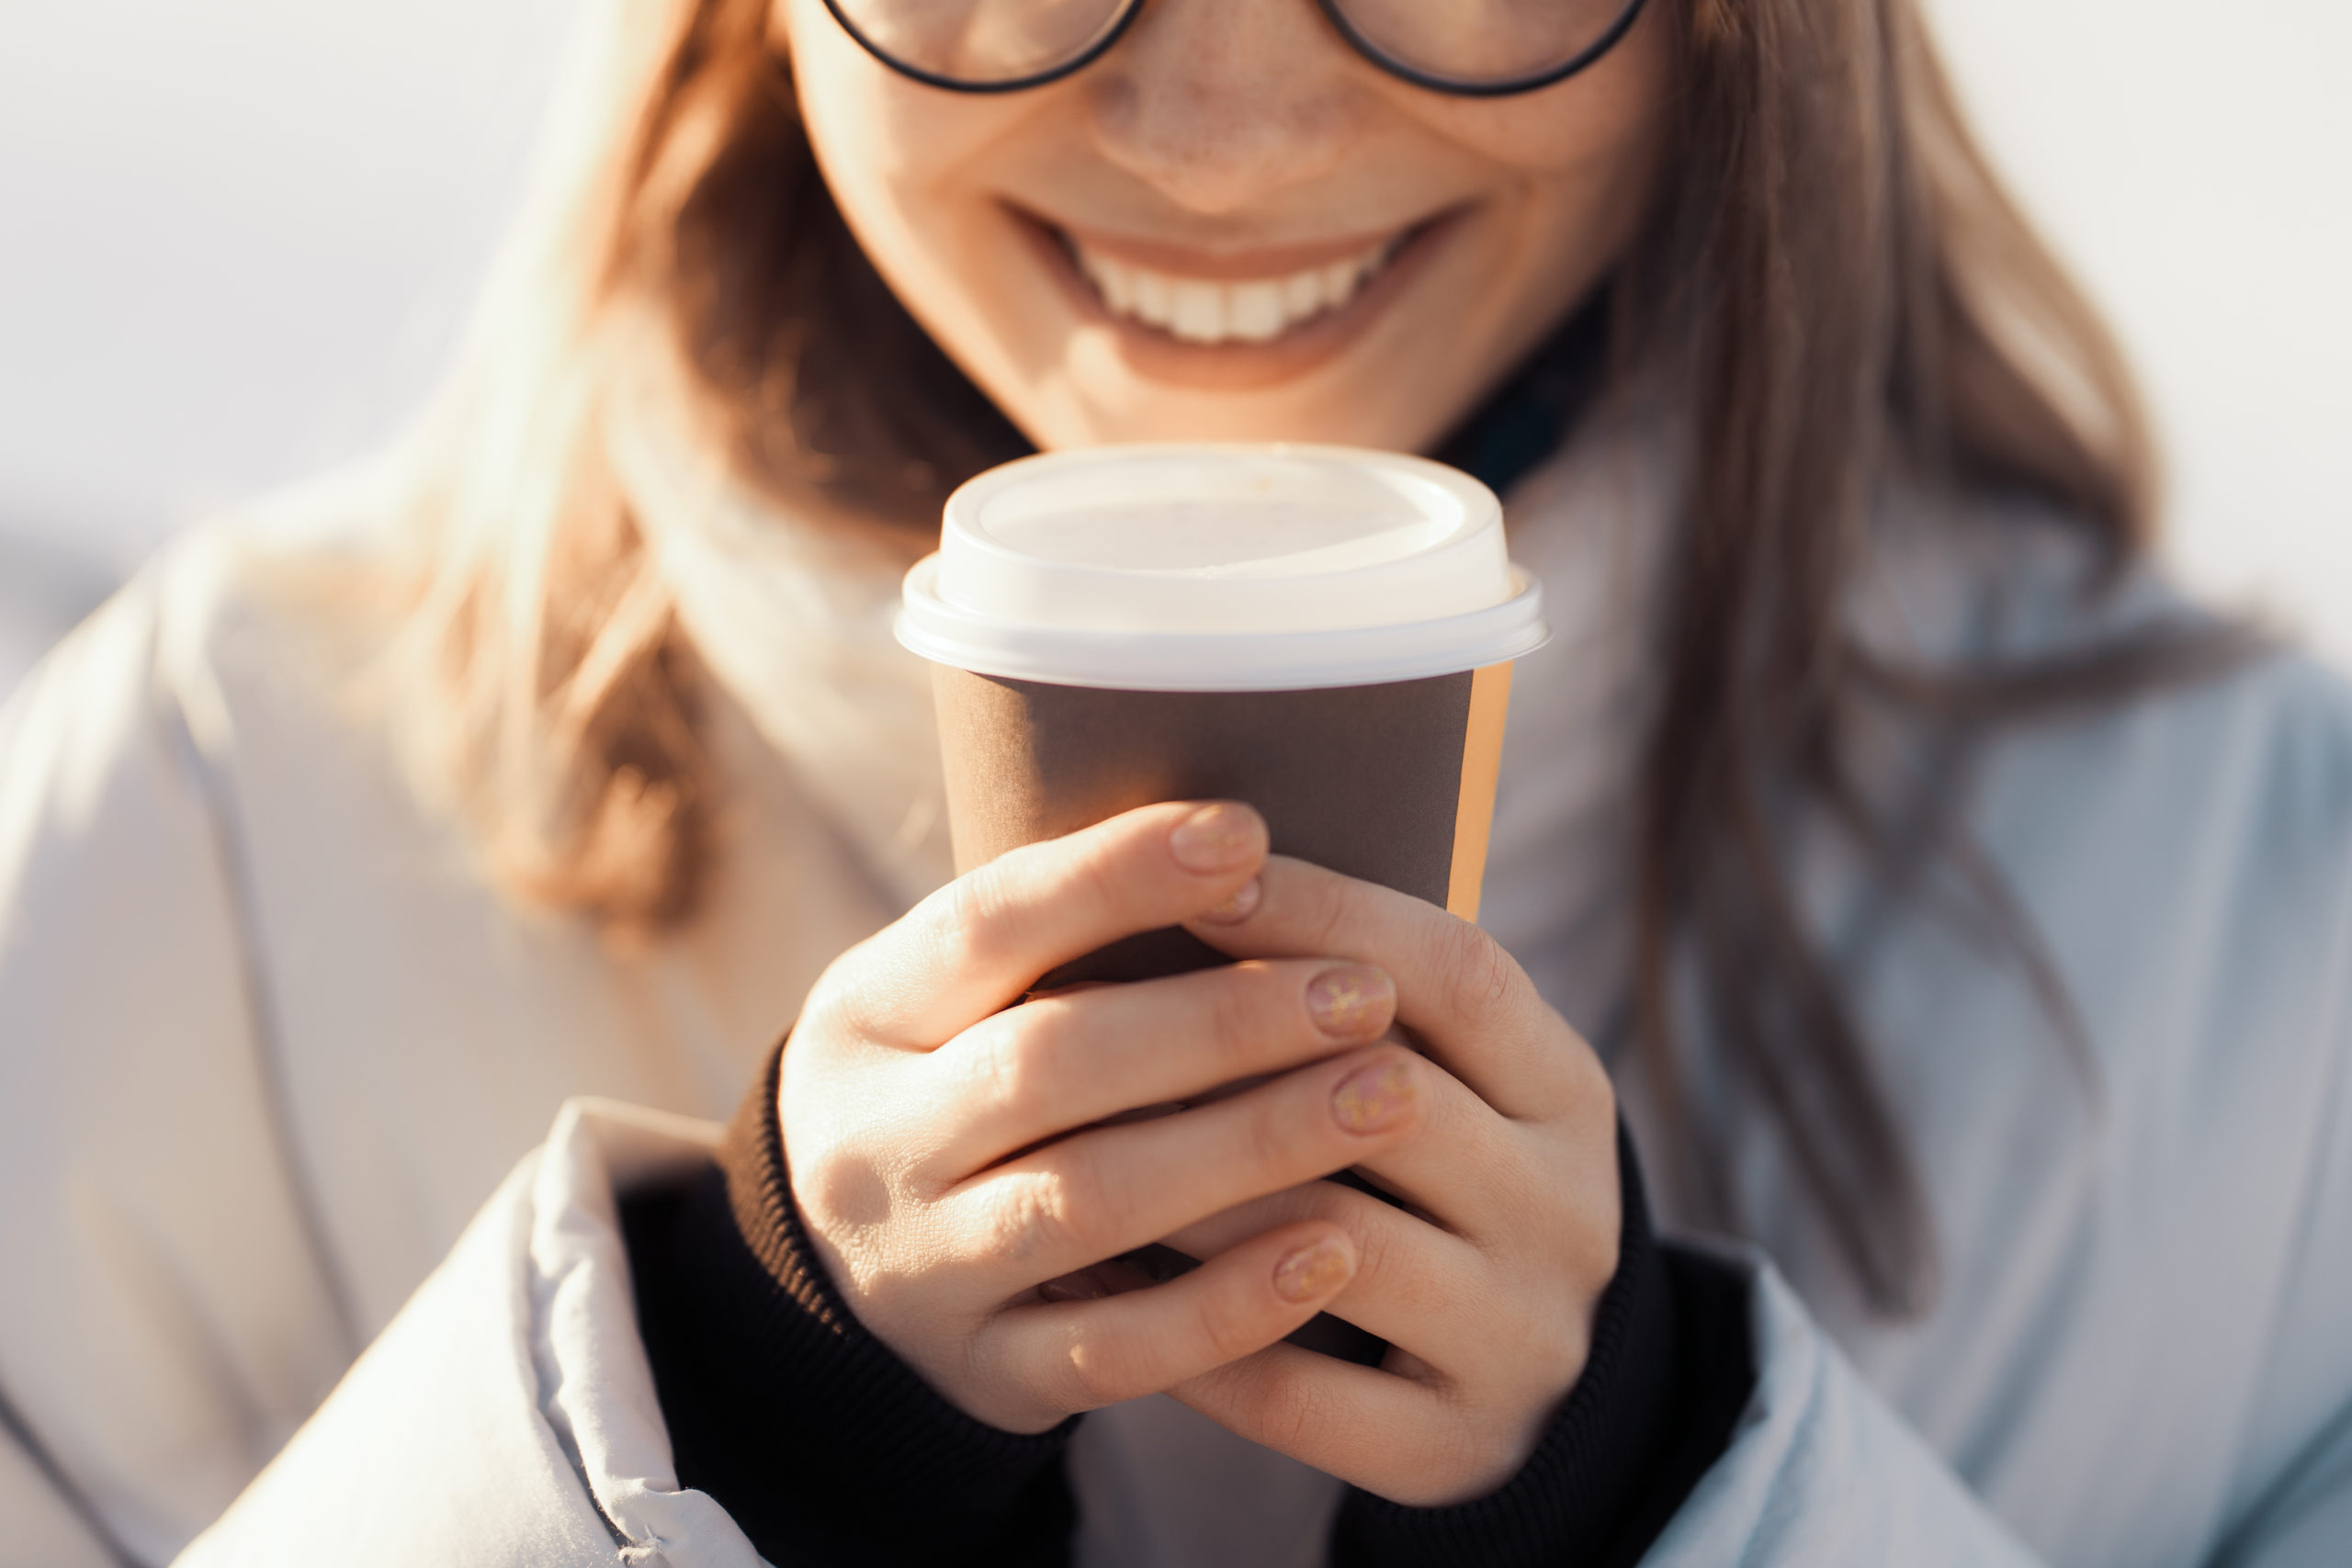 Happy young woman holding a takeaway coffee cup